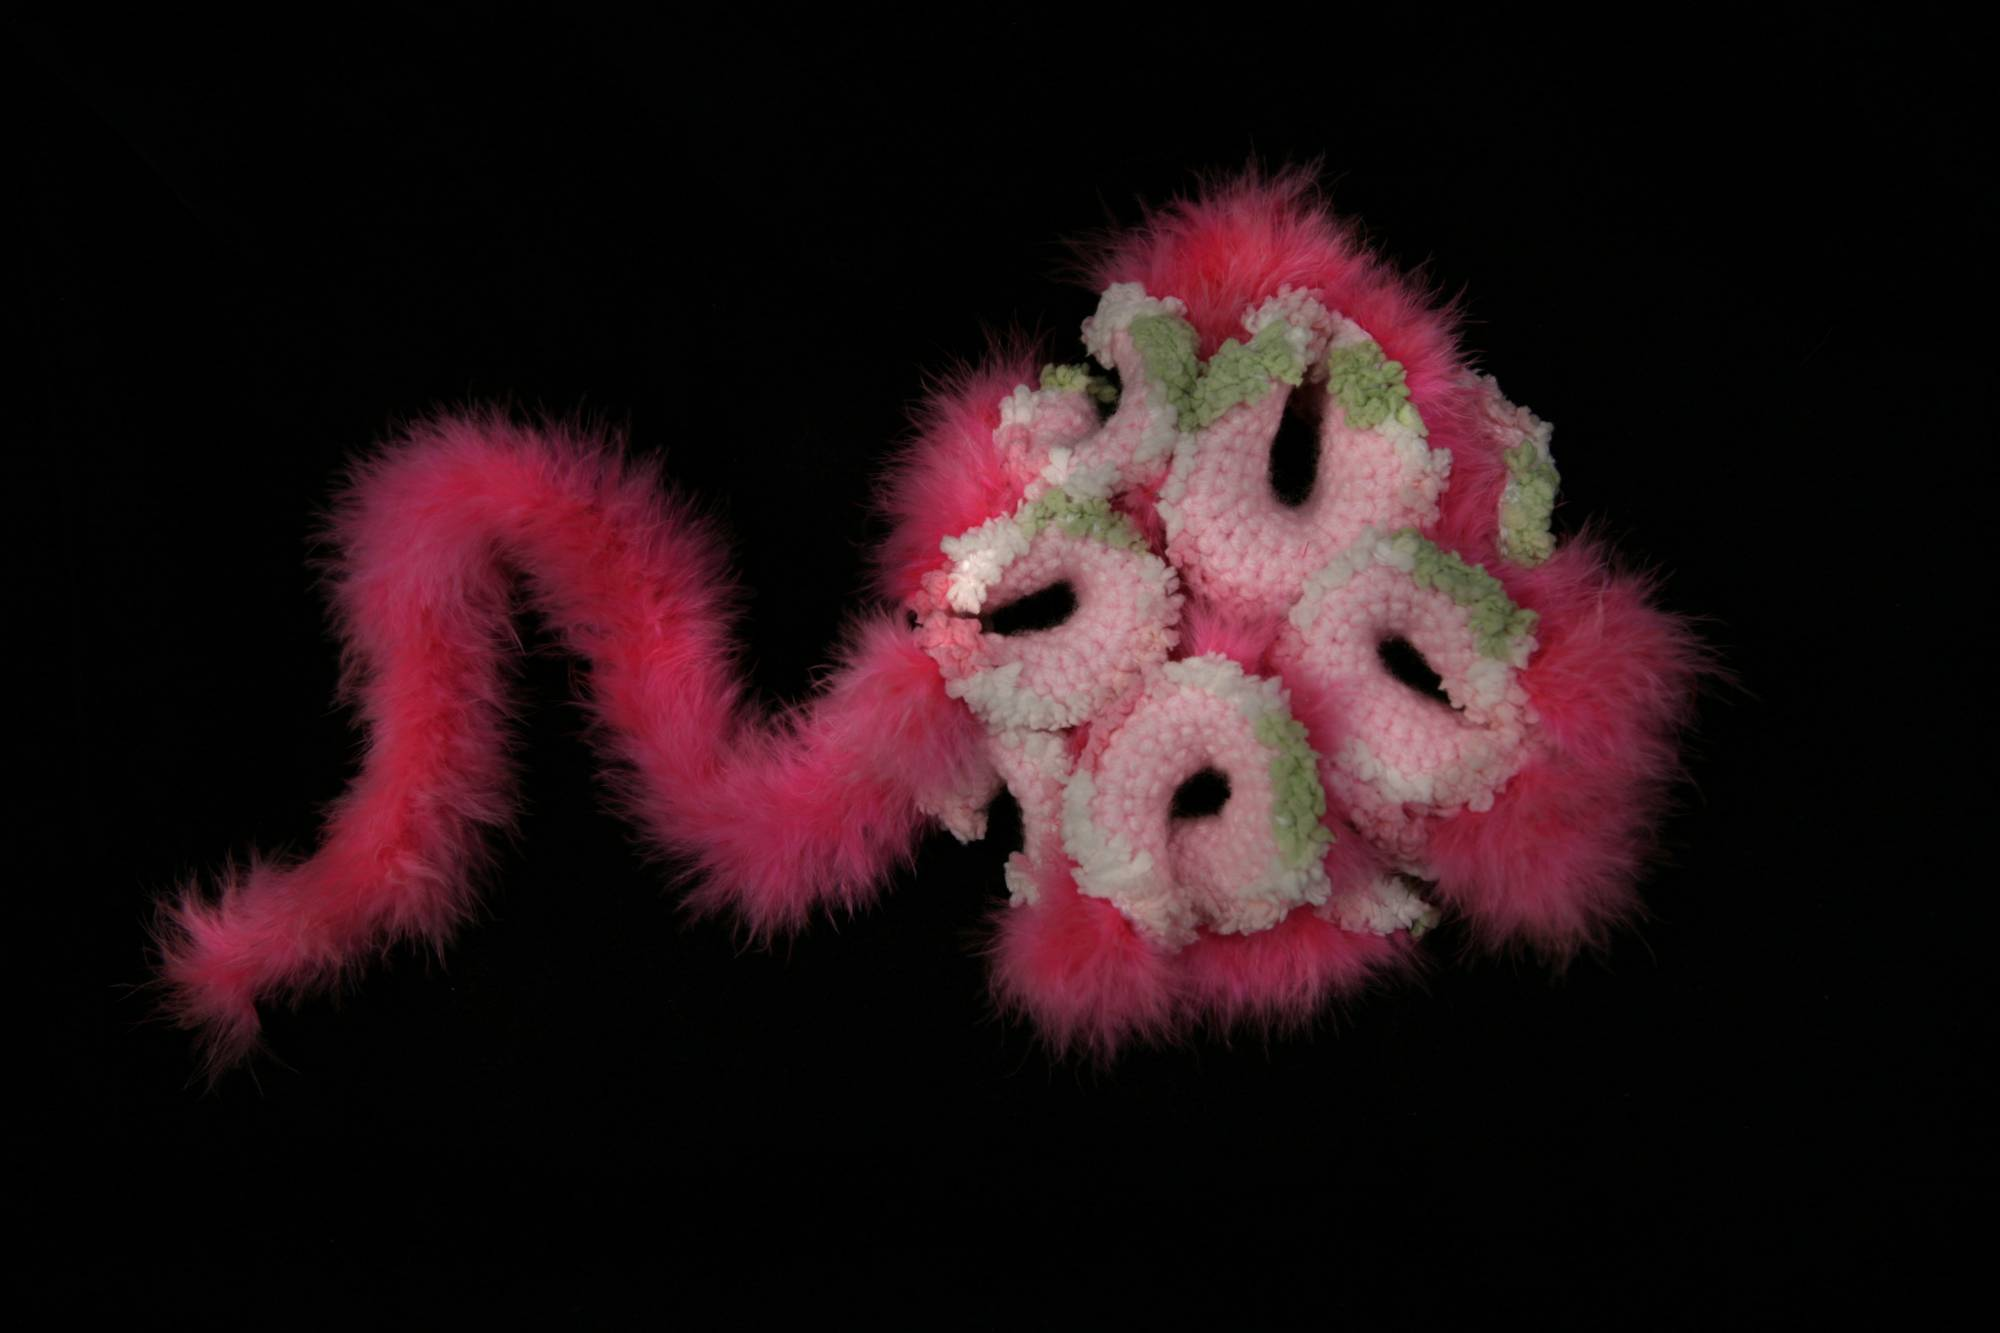 Pink sea creature looks like a surreal jellyfish with a hot pink fluffy tail